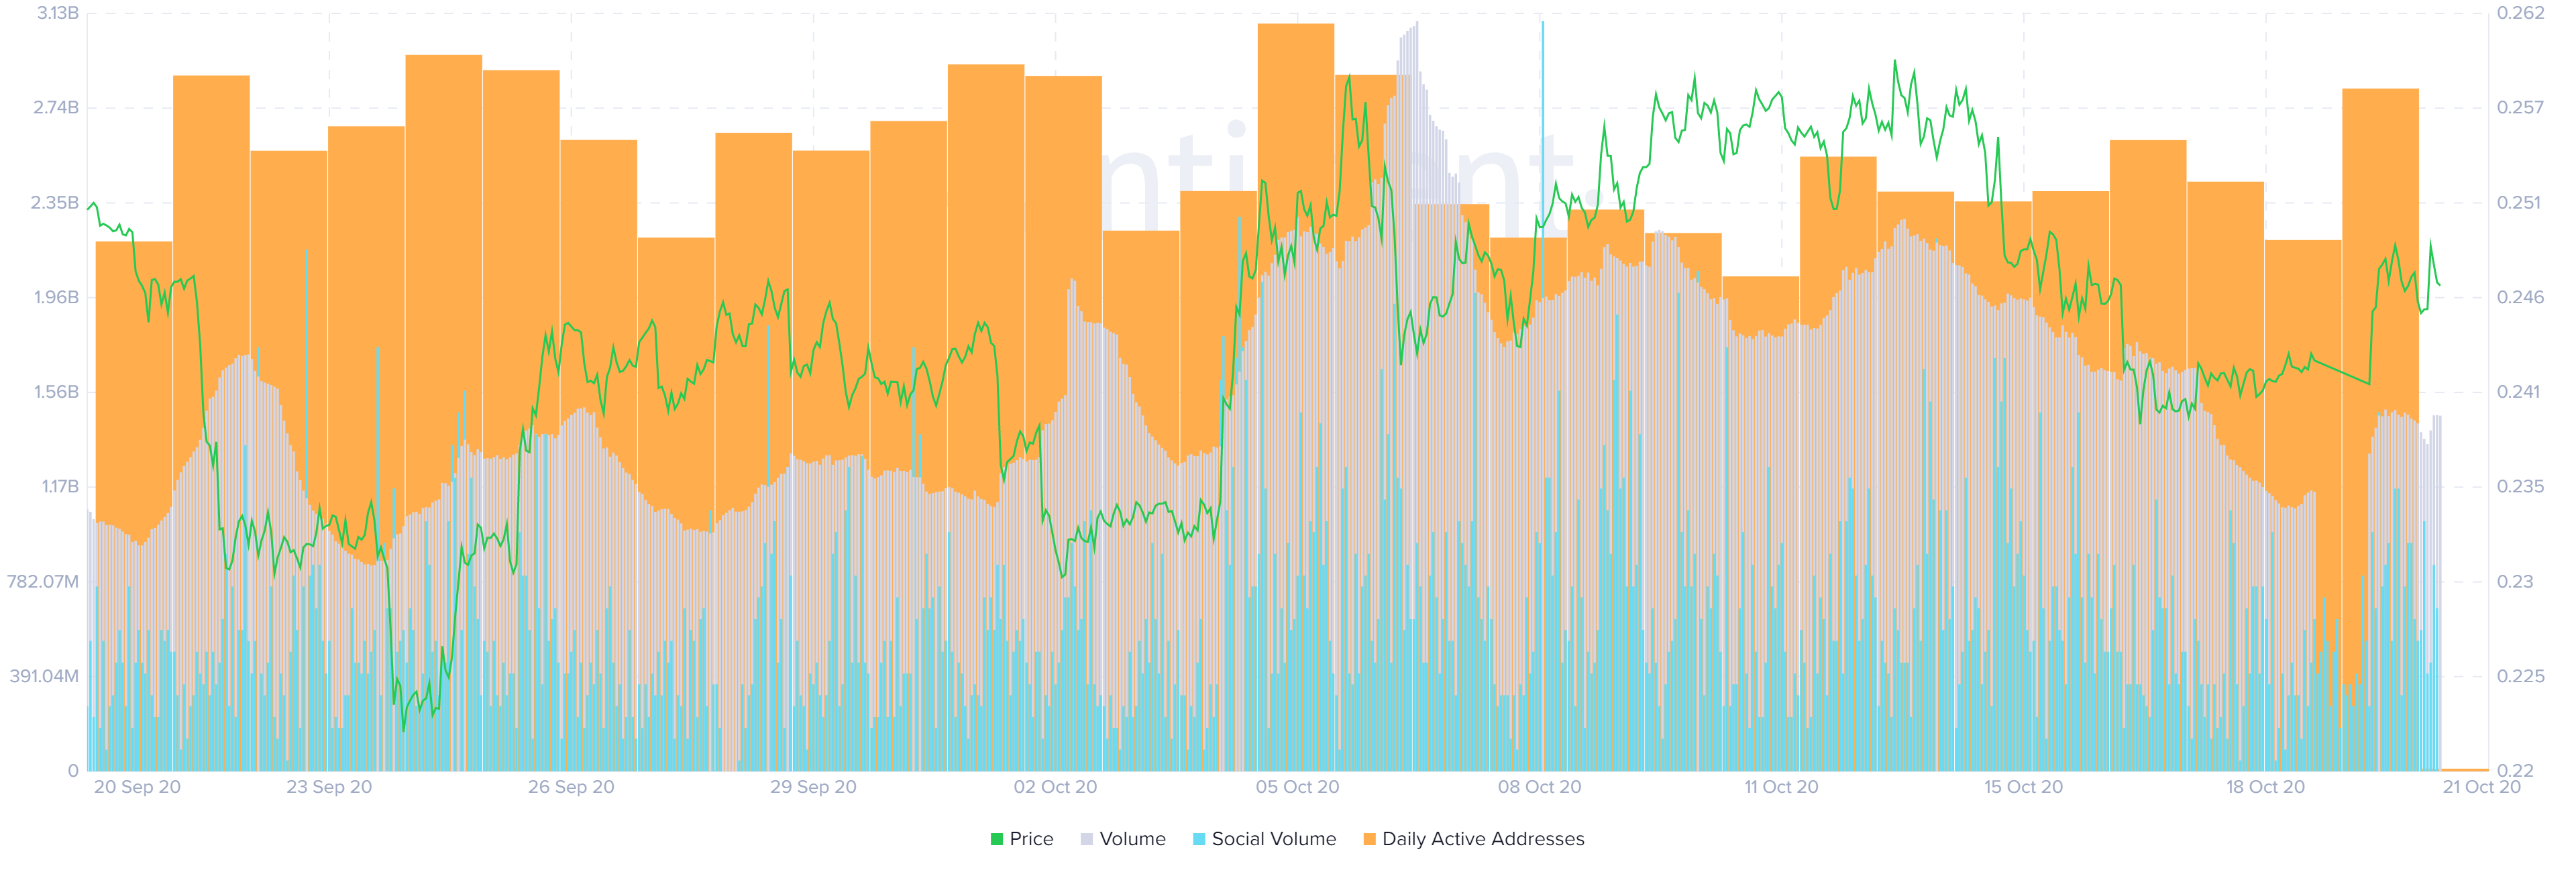 Ripple volume/social volume/daily active addresses chart